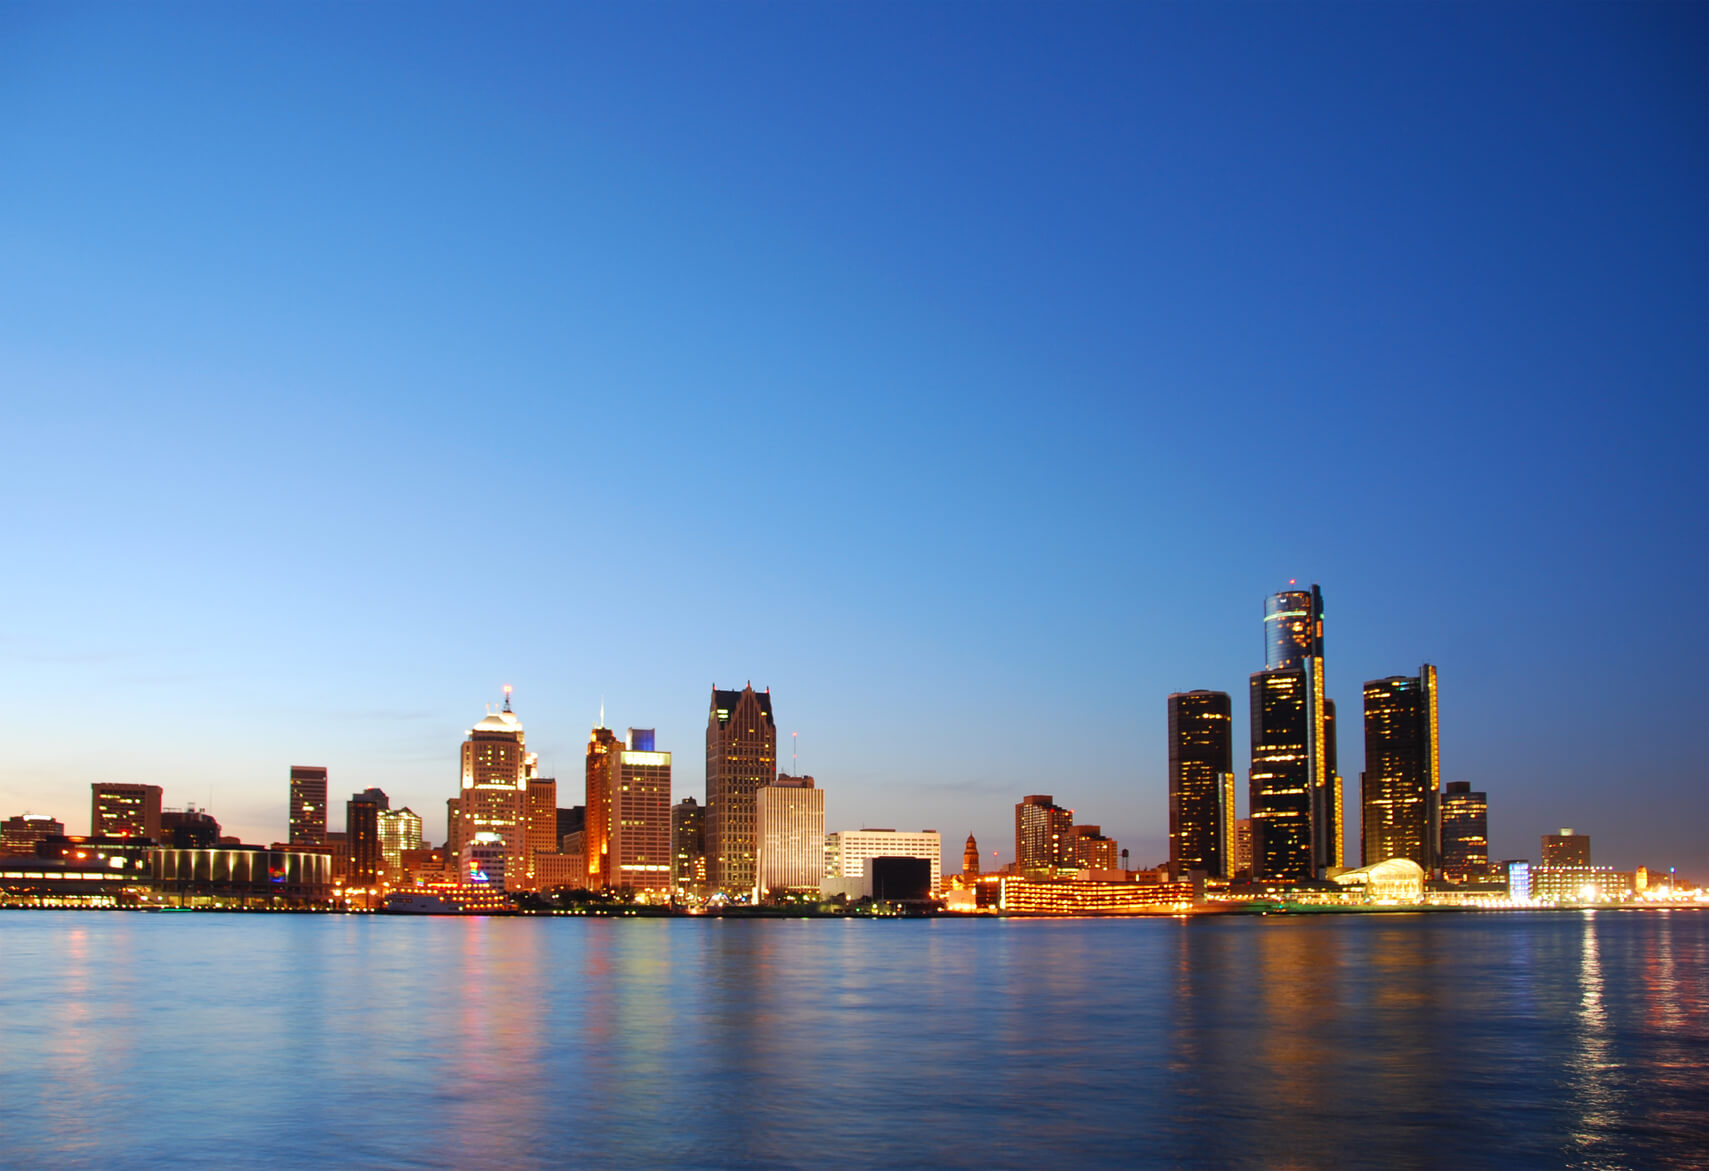 SUMMER: Non-stop from New York to Detroit (& vice versa) for only $74 roundtrip (Aug-Dec dates)